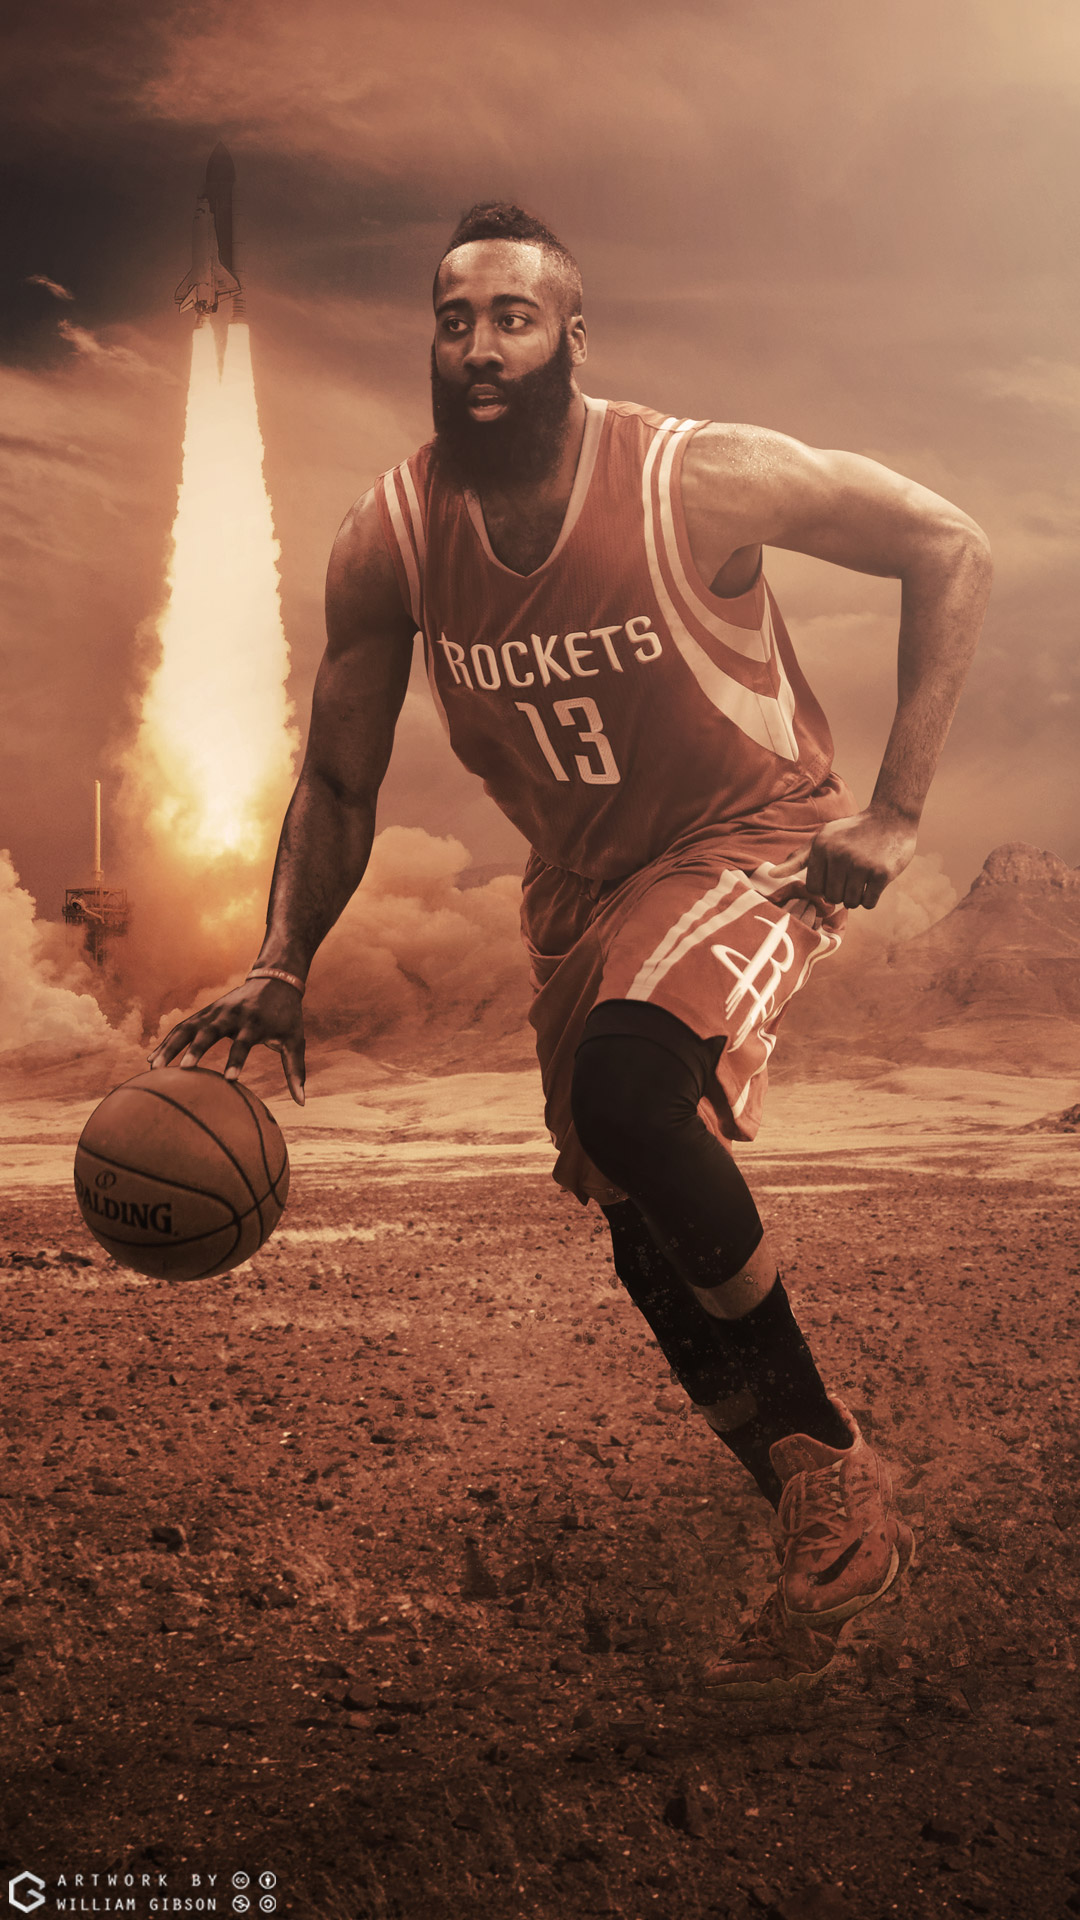 James Harden Rockets Mobile Wallpaper